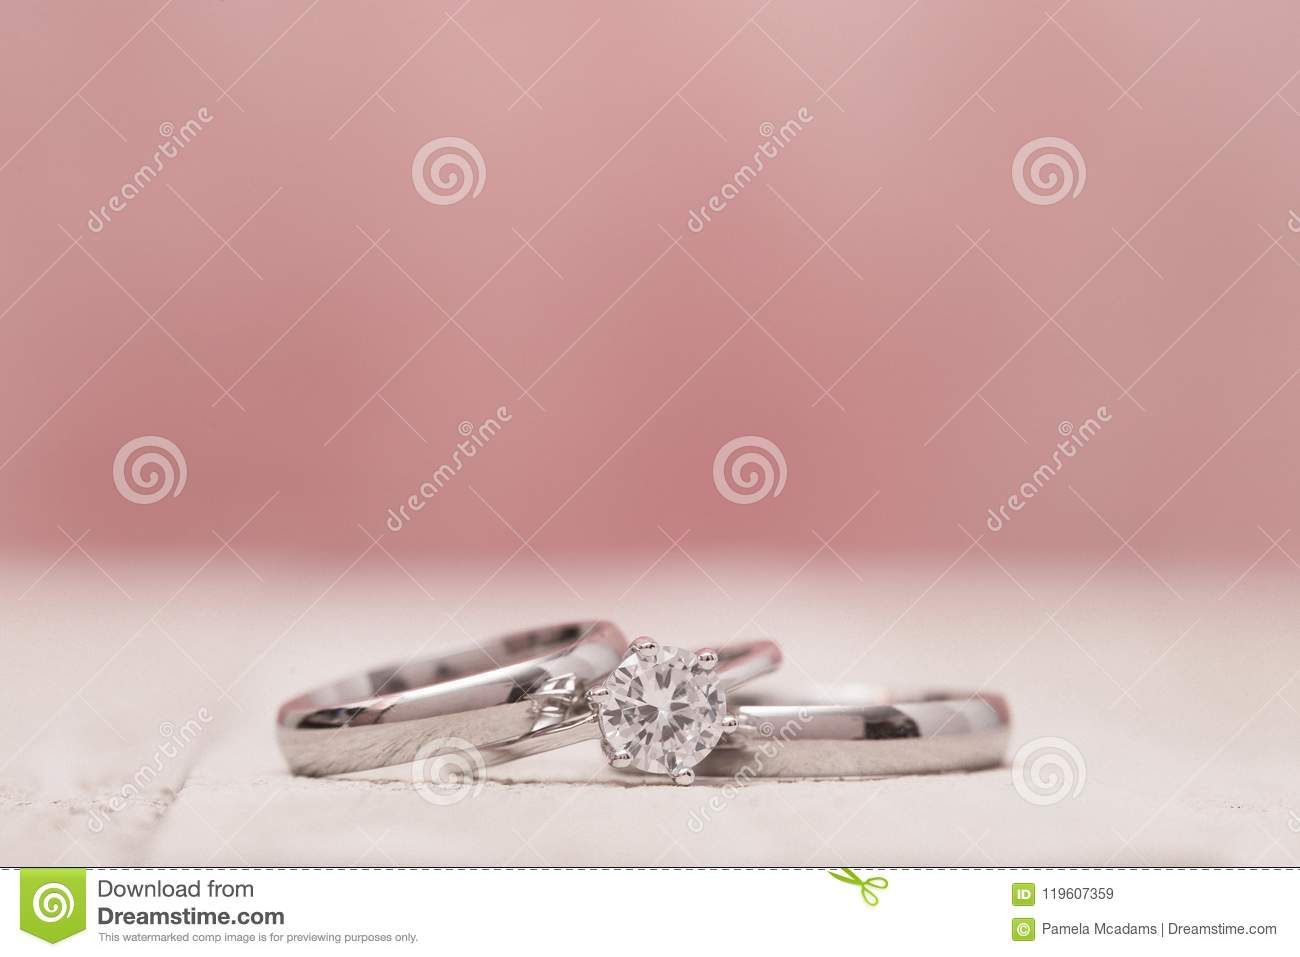 Macro View Of Wedding Rings Stock Image - Image of covenant, bride ...